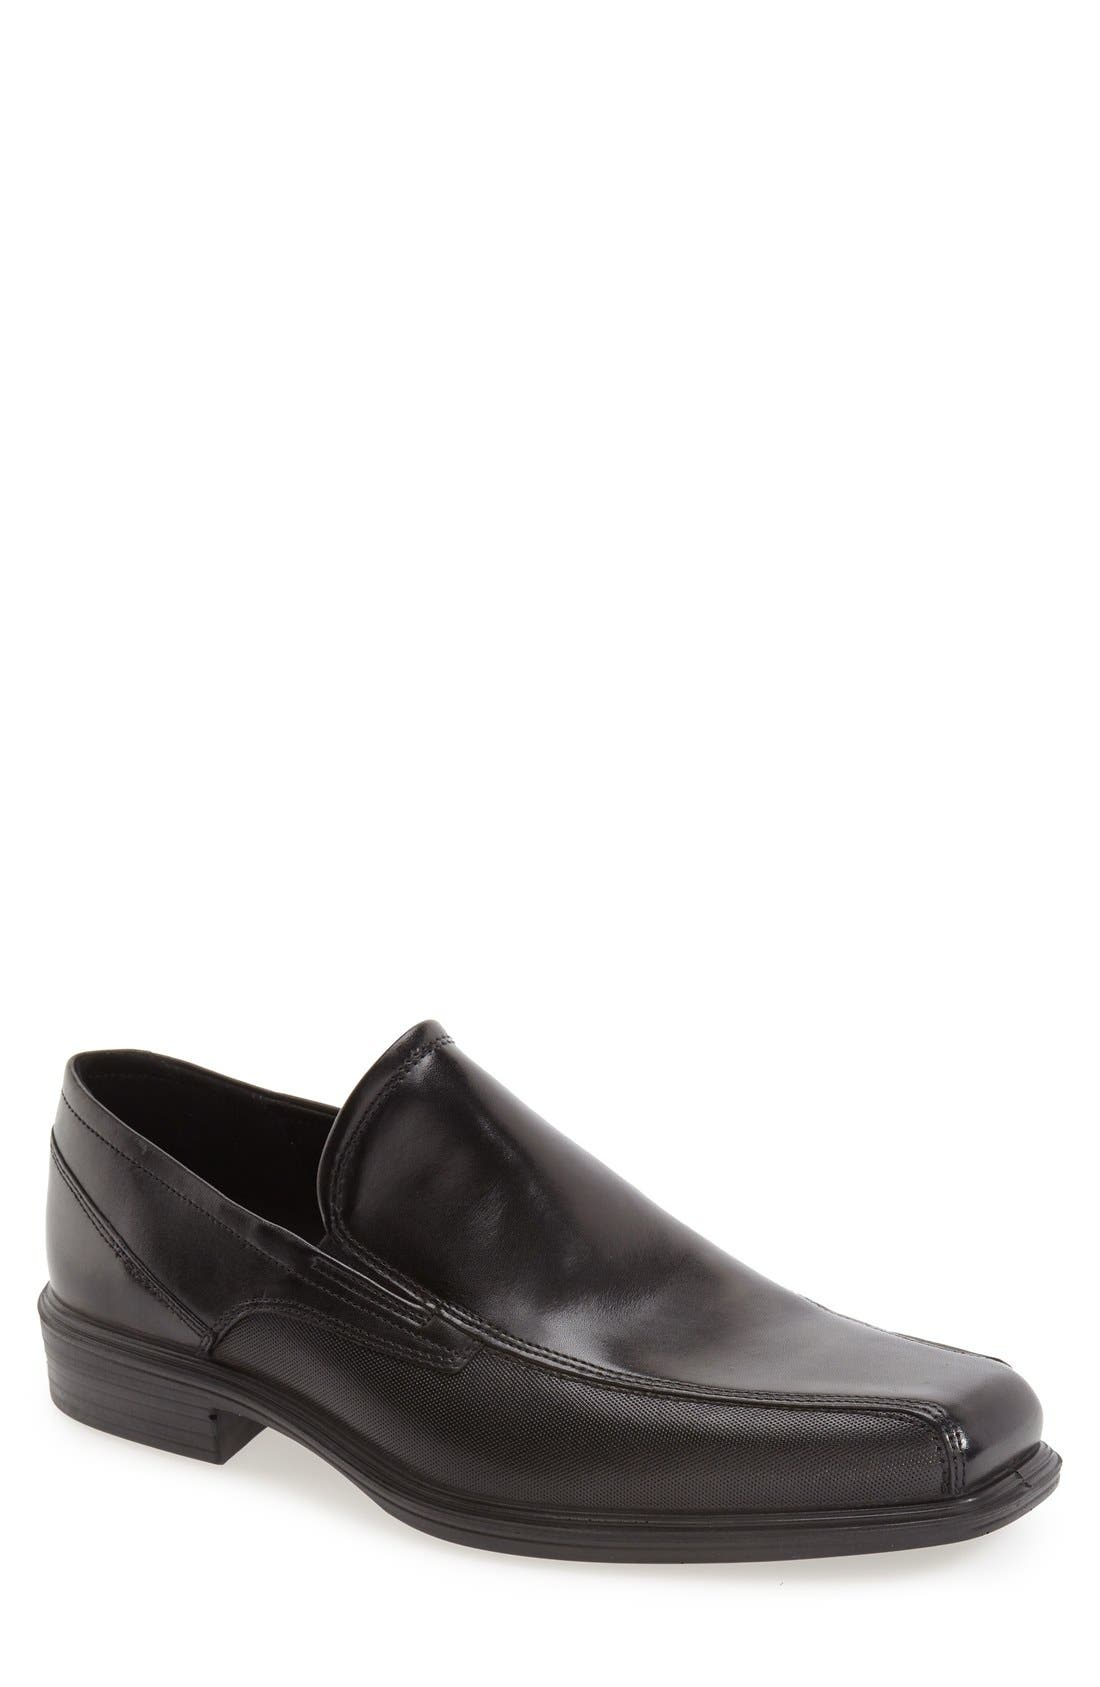 'Johannesburg' Venetian Loafer,                             Main thumbnail 1, color,                             BLACK LEATHER